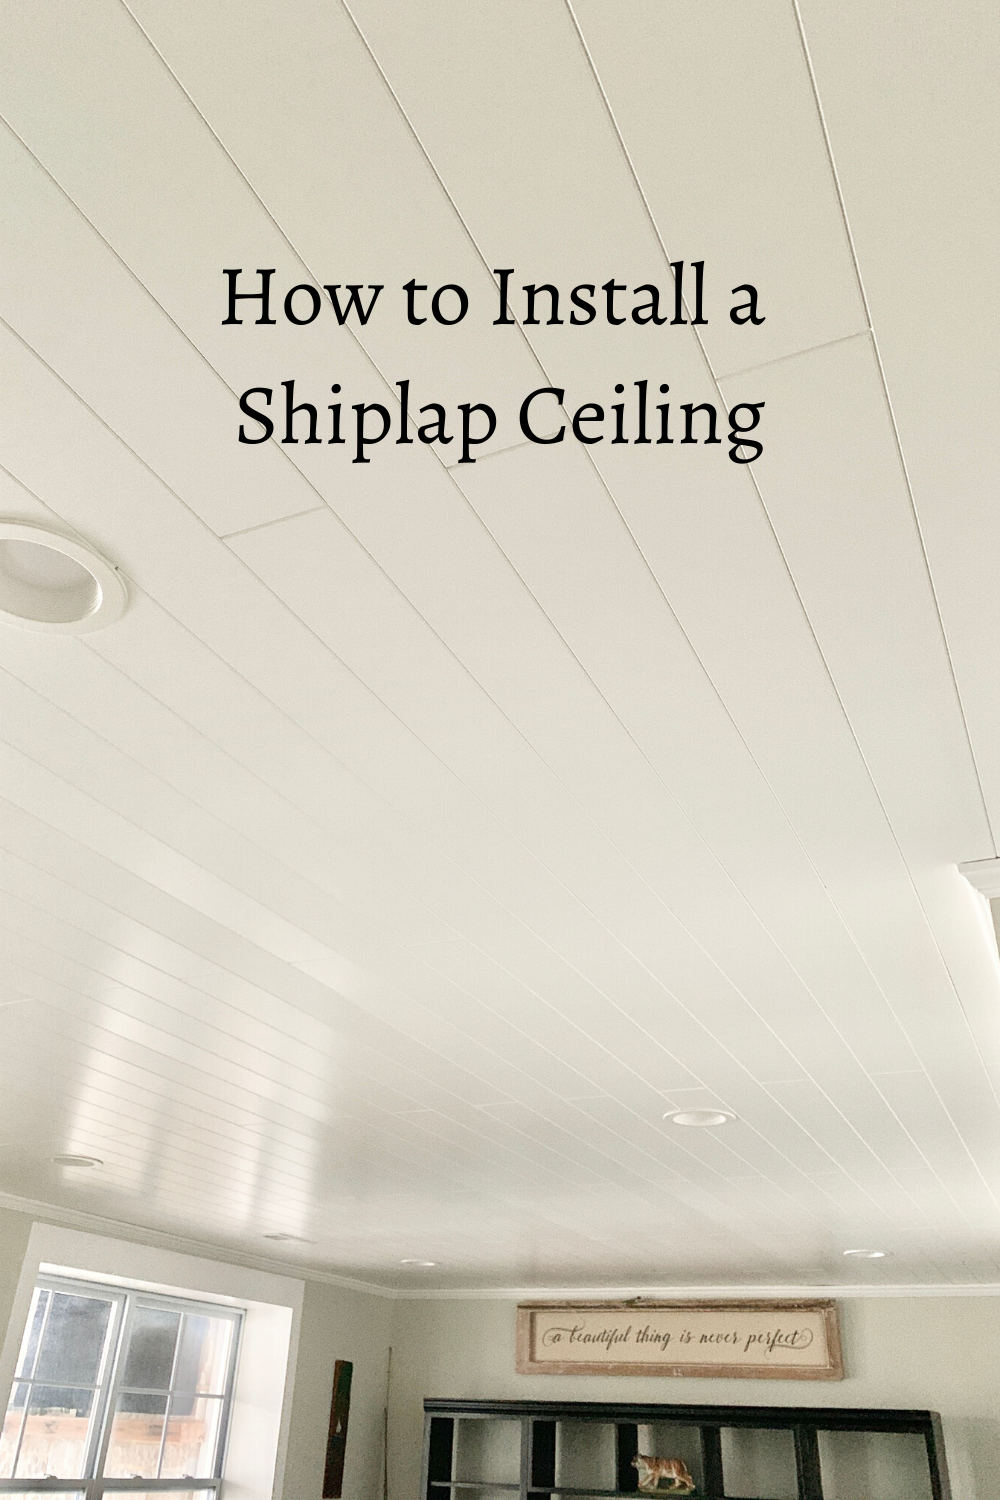 How To Install A Shiplap Ceiling Using Armstrong Woodhaven Wood Planks This Easy Diy Will Give Your Ceiling A Farmhouse Look And Feel It Is Installed On A Dro In 2020